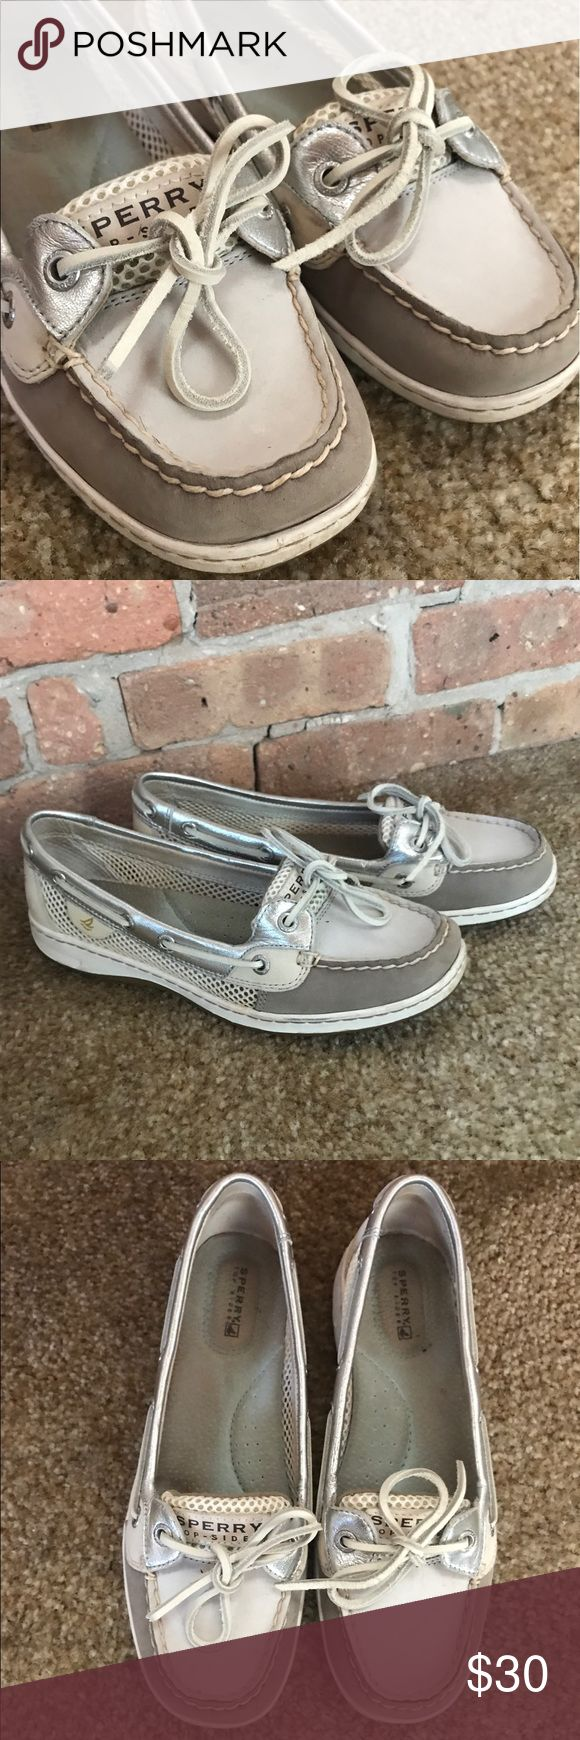 Women's grey silver and white Sperry's Women's Sperry's size 7.5 color is mostly white with silver and grey detail. Outside in great condition. Super comfortable and great for summer. Sperry Shoes Flats & Loafers